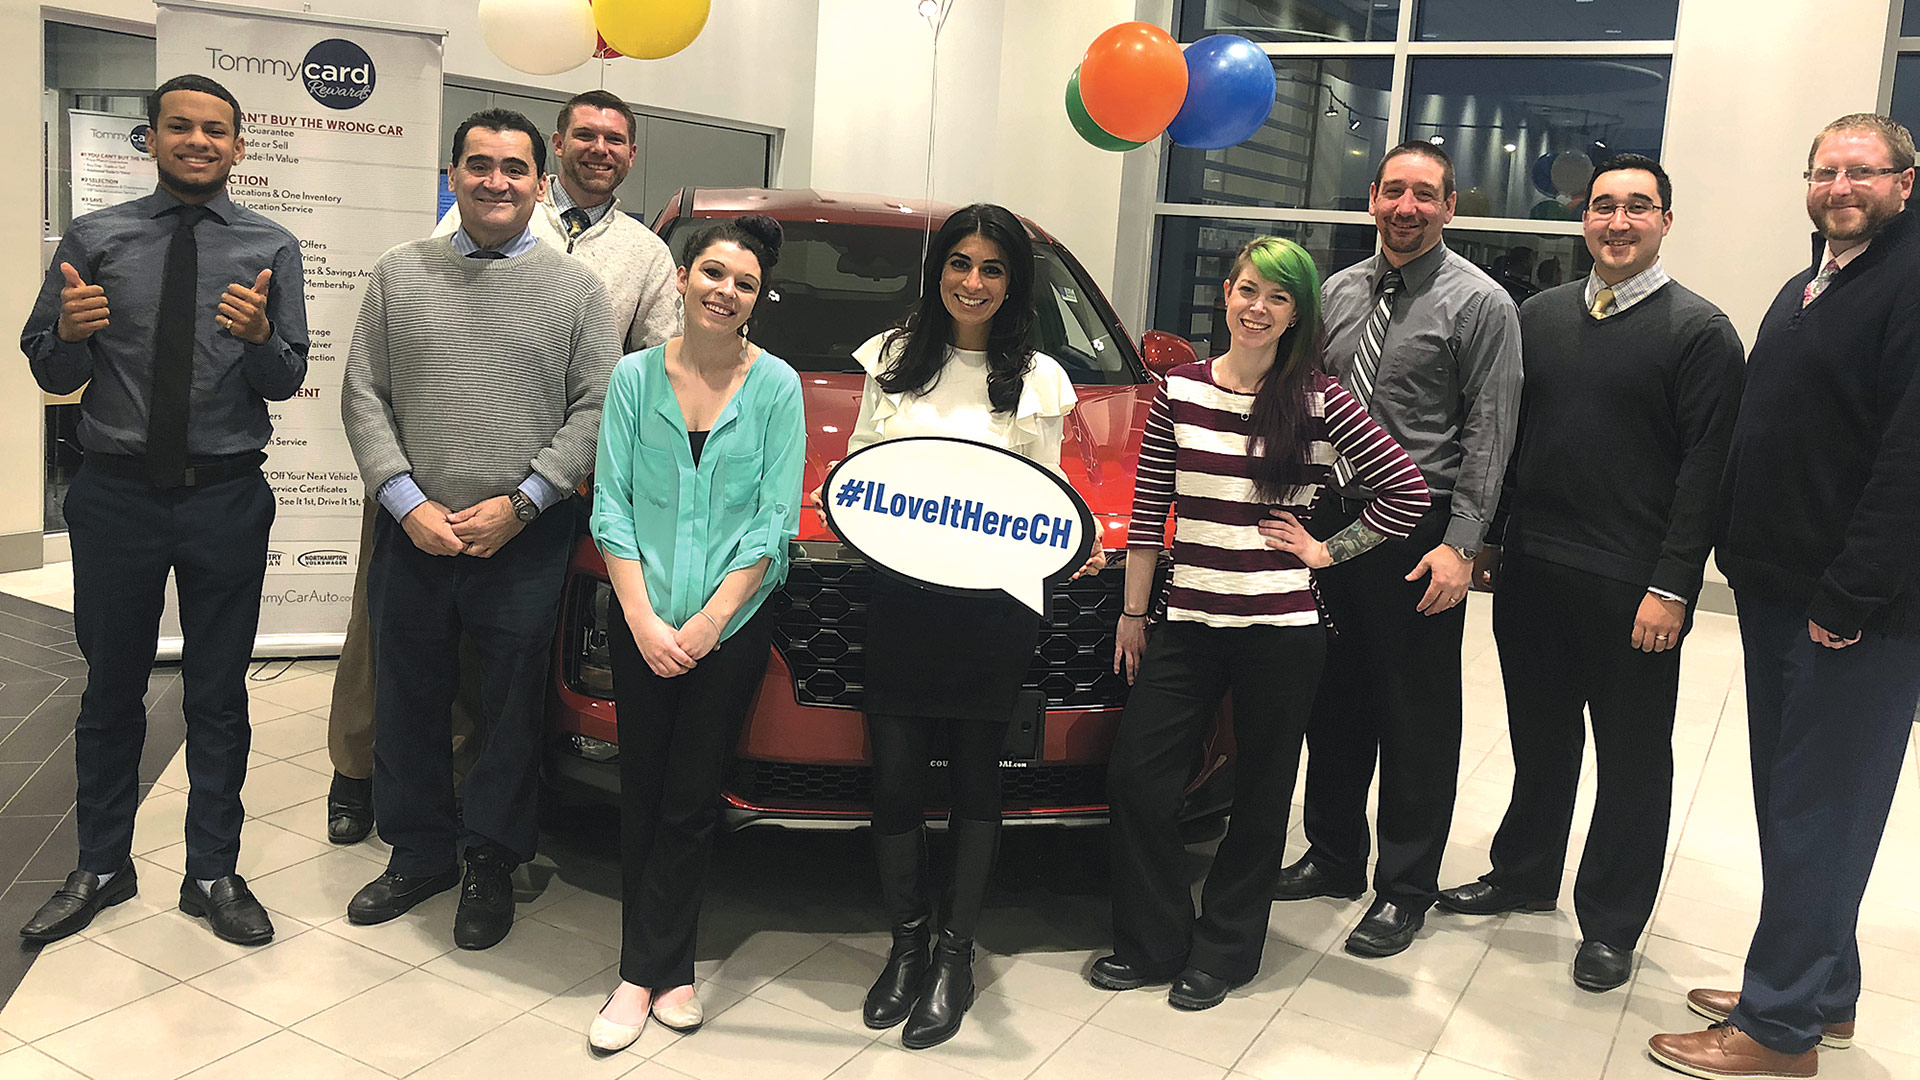 Carla Cosenzi, center, joins staff at the dealership in celebrating the honor.